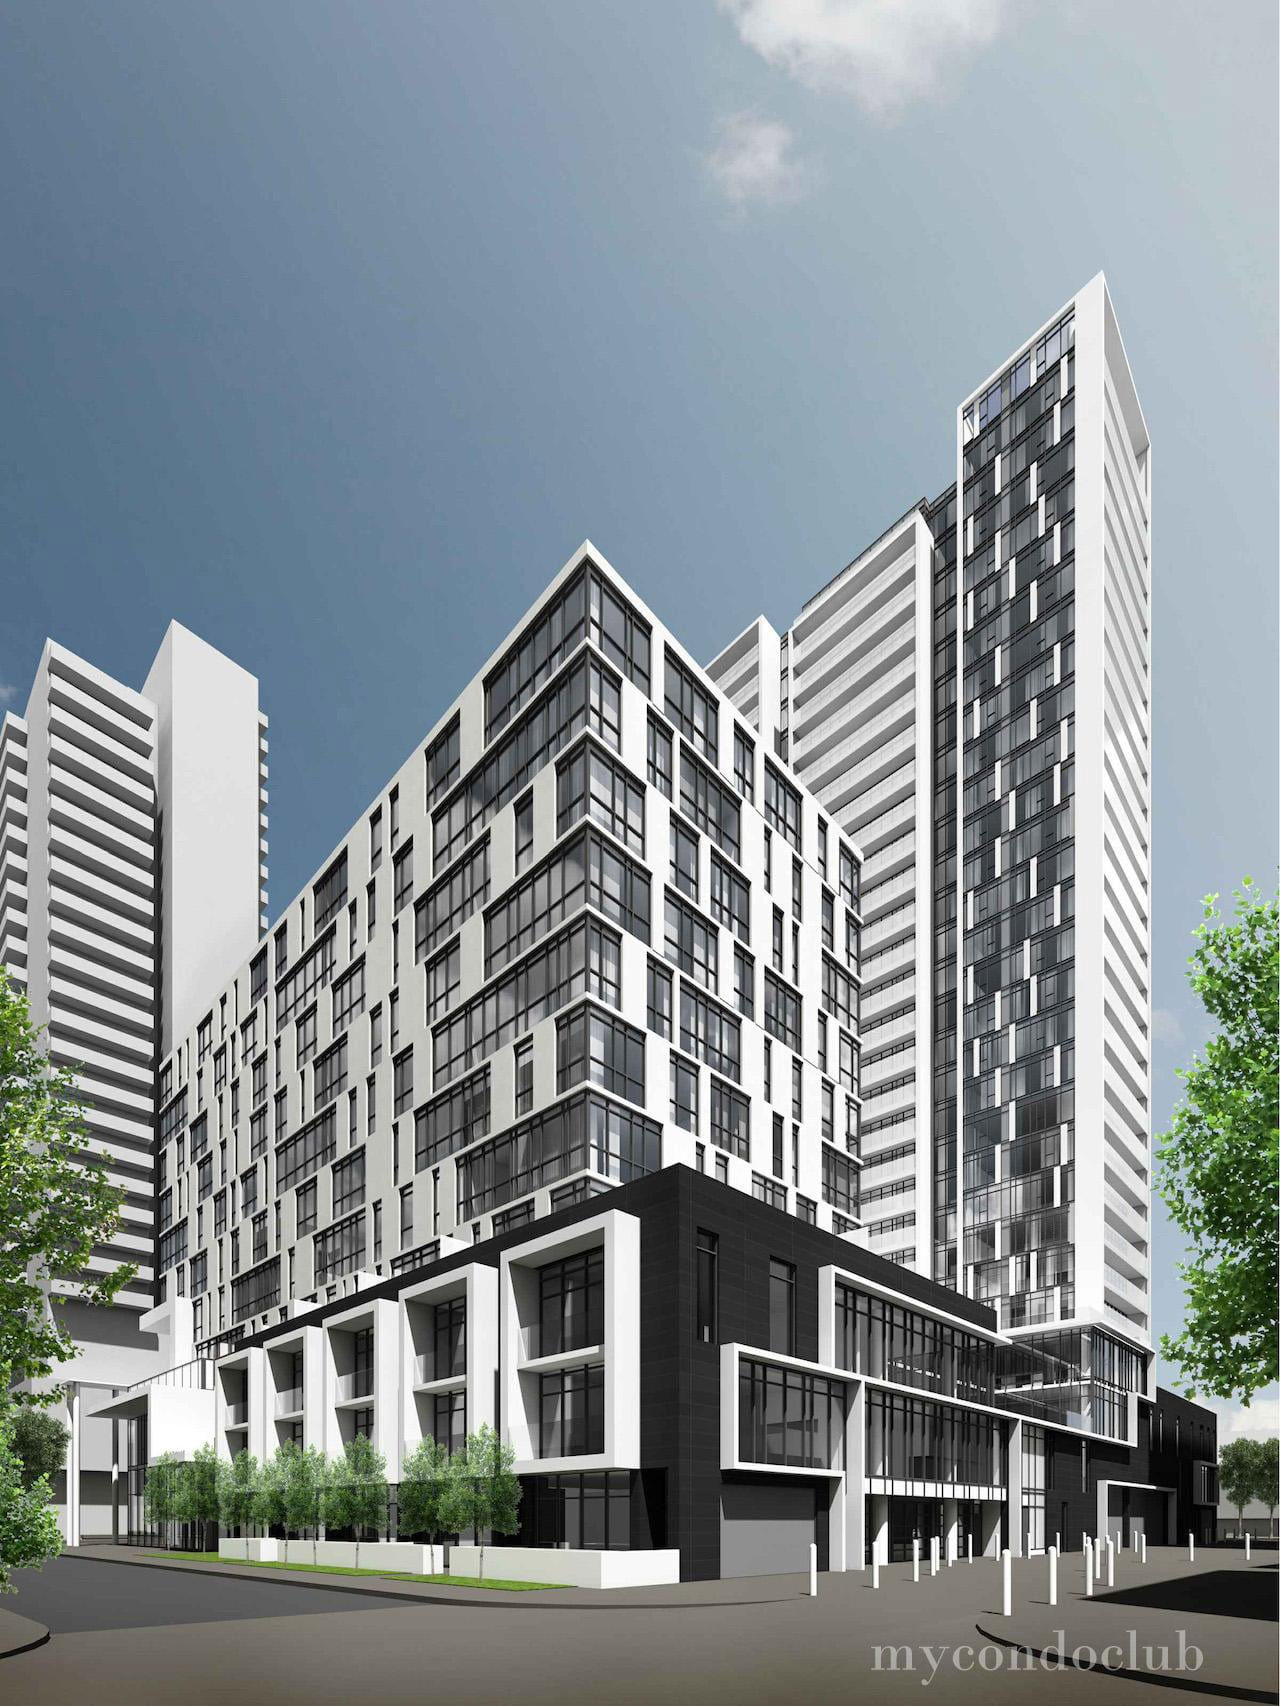 DuEast-condo-tower-daniels-corporation-DanielsDuEast-Condominium225-Sumach-Street-toronto-mycondoclub